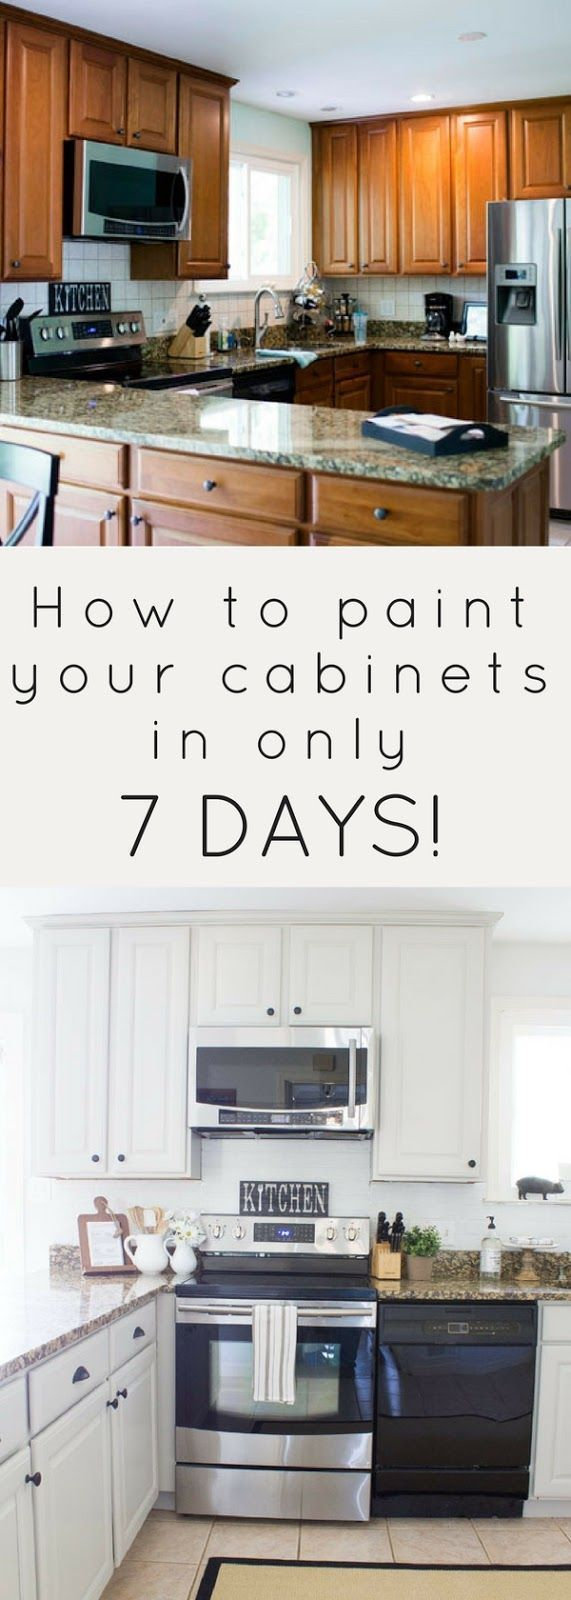 how to paint your kitchen cabinets fast! with the right tools, it's